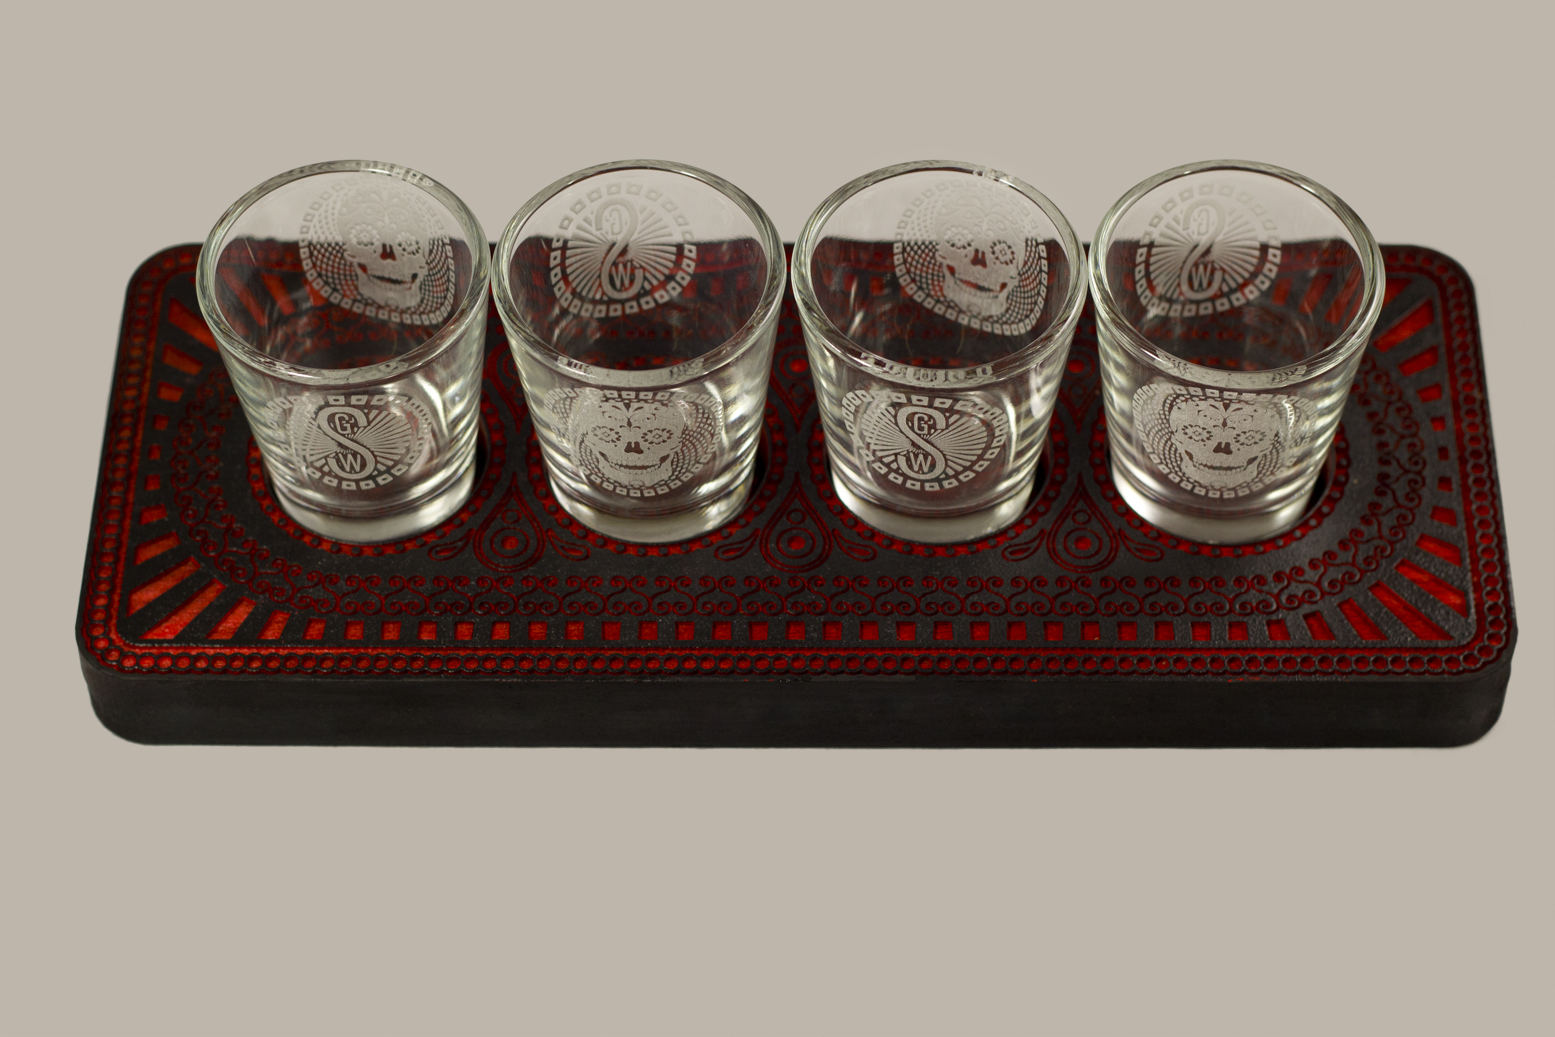 Good Wood shot glass holders